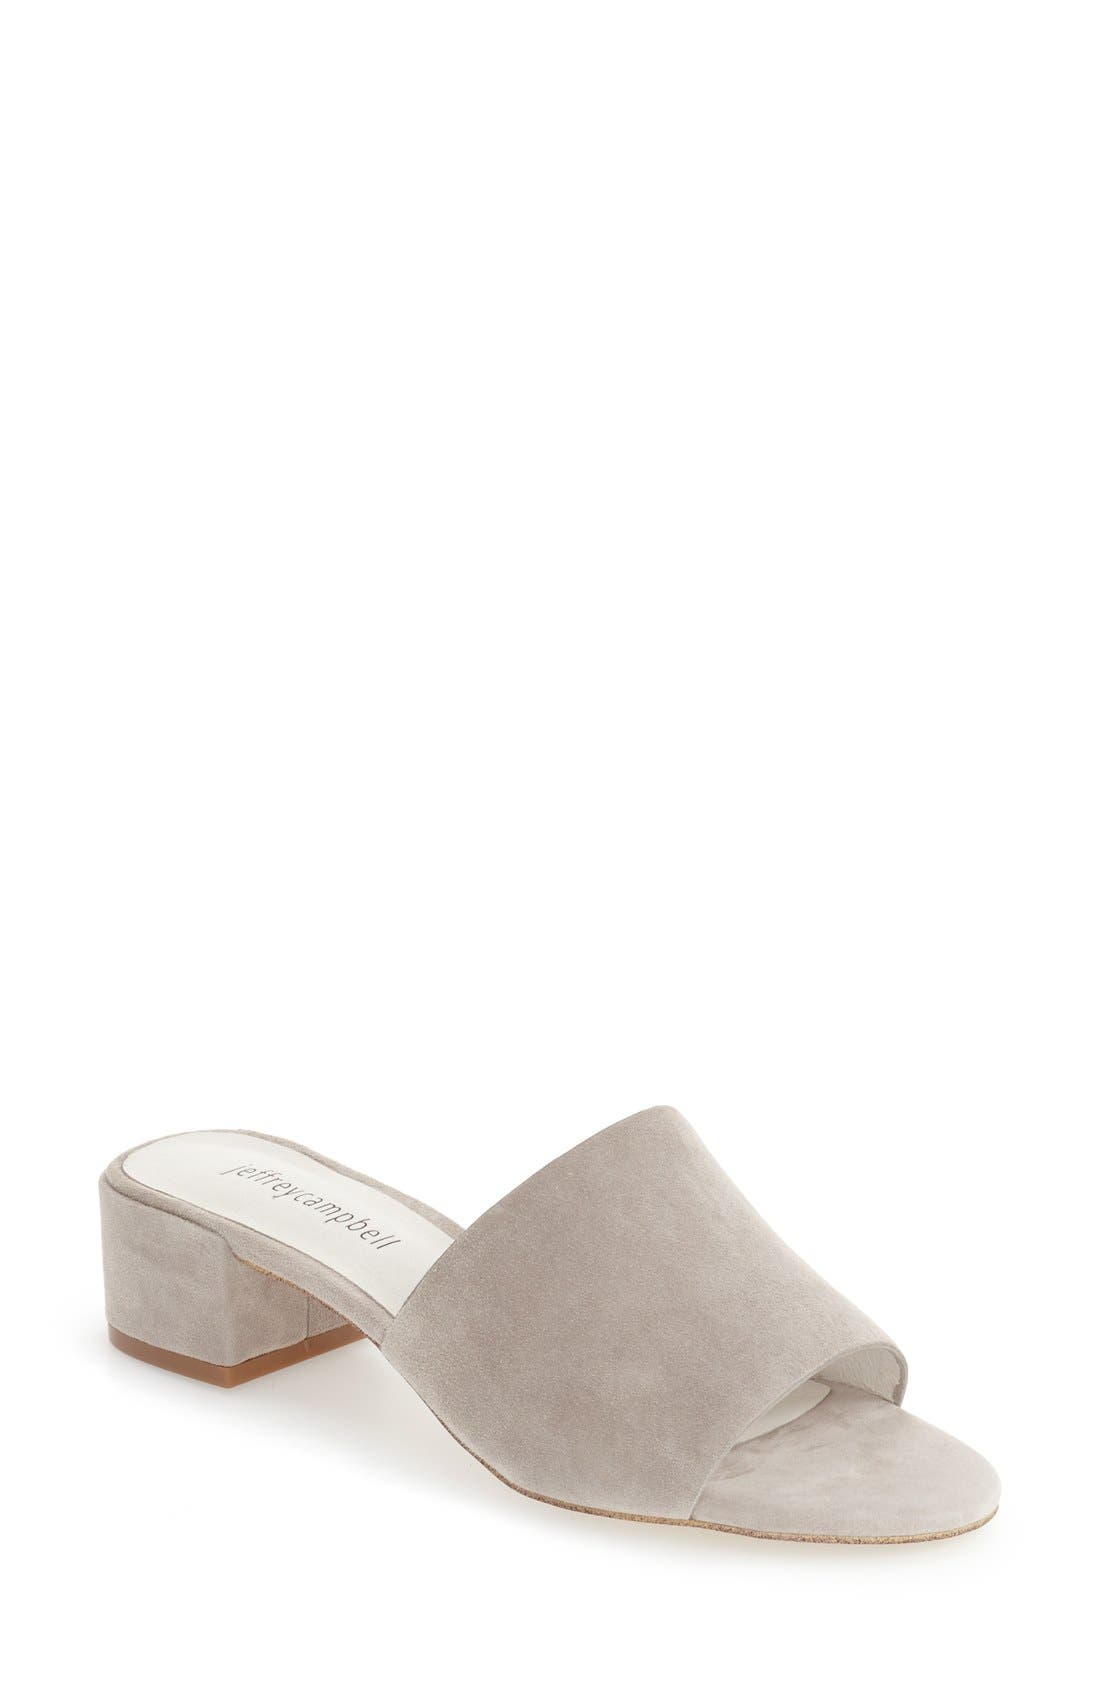 'Beaton' Slide Sandal,                             Main thumbnail 4, color,